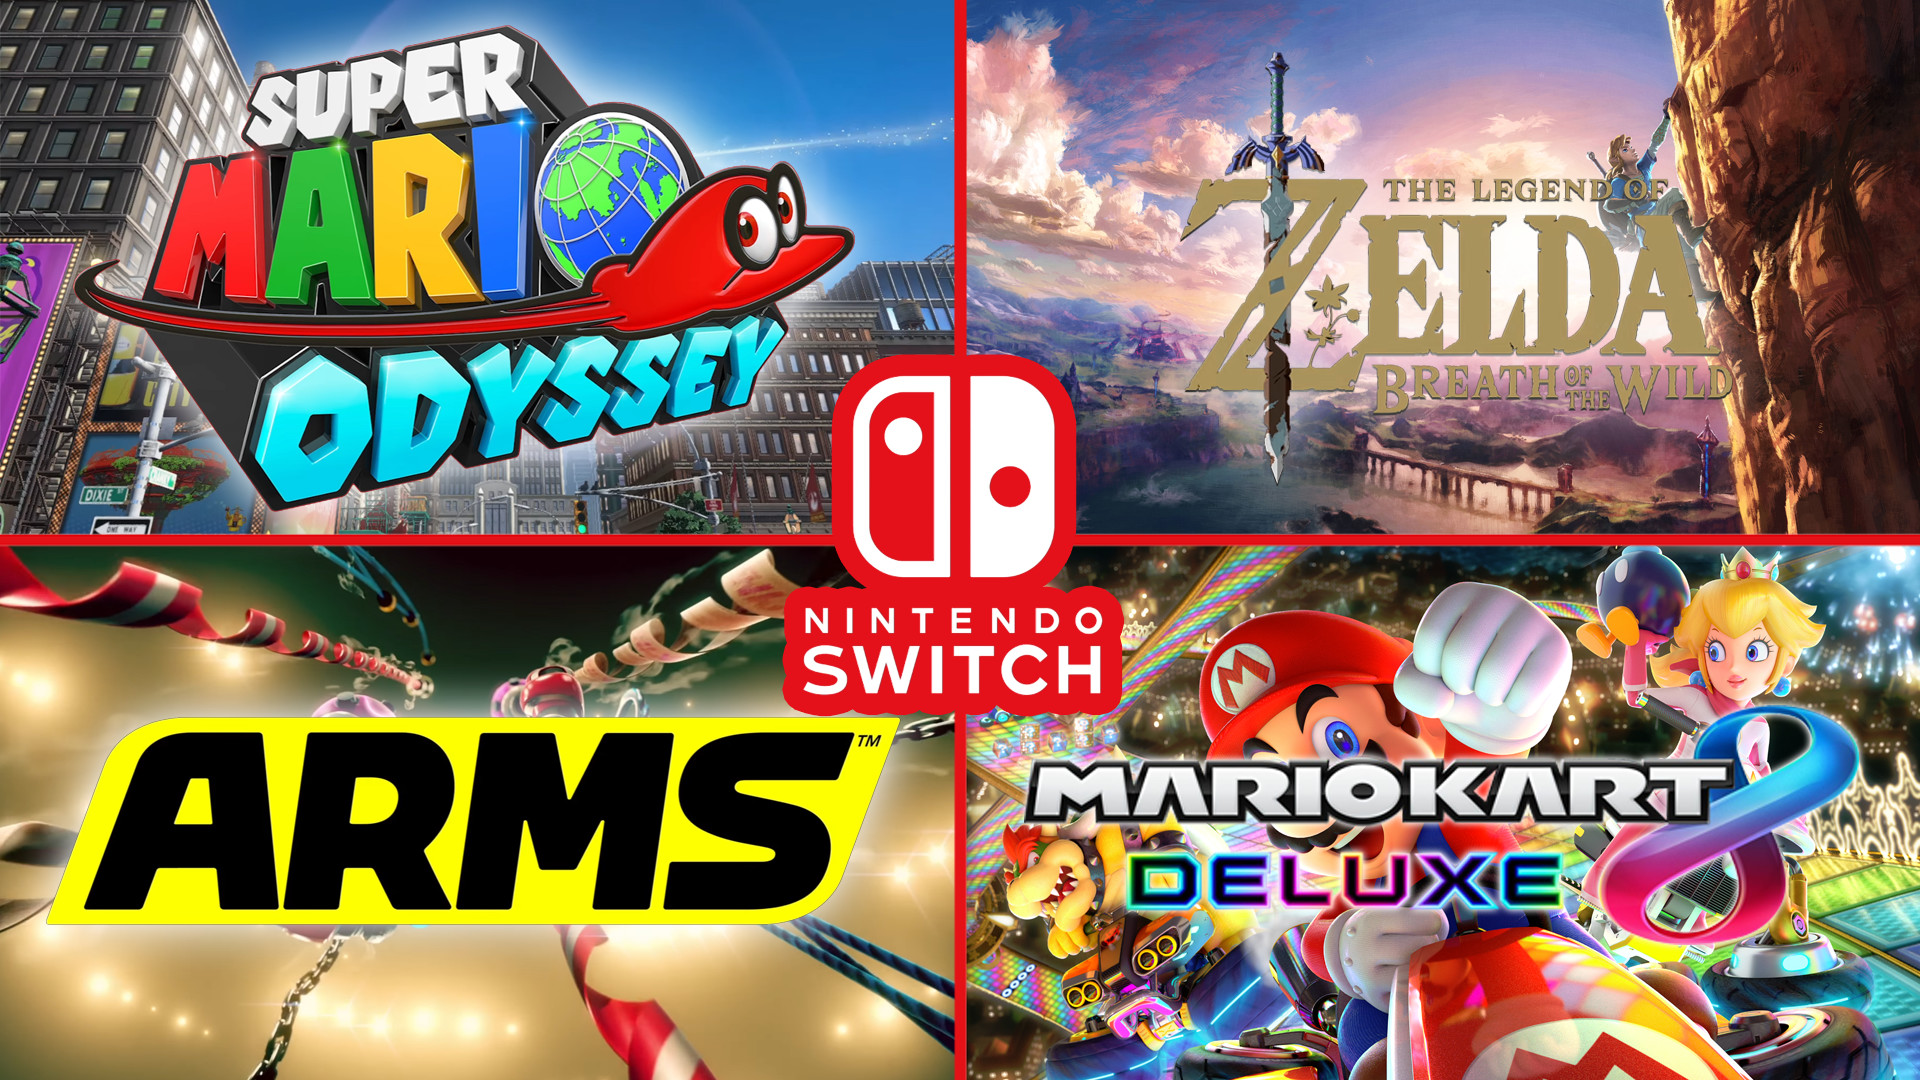 WallpaperI made a wallpaper for some Nintendo Switch games I'm excited for.